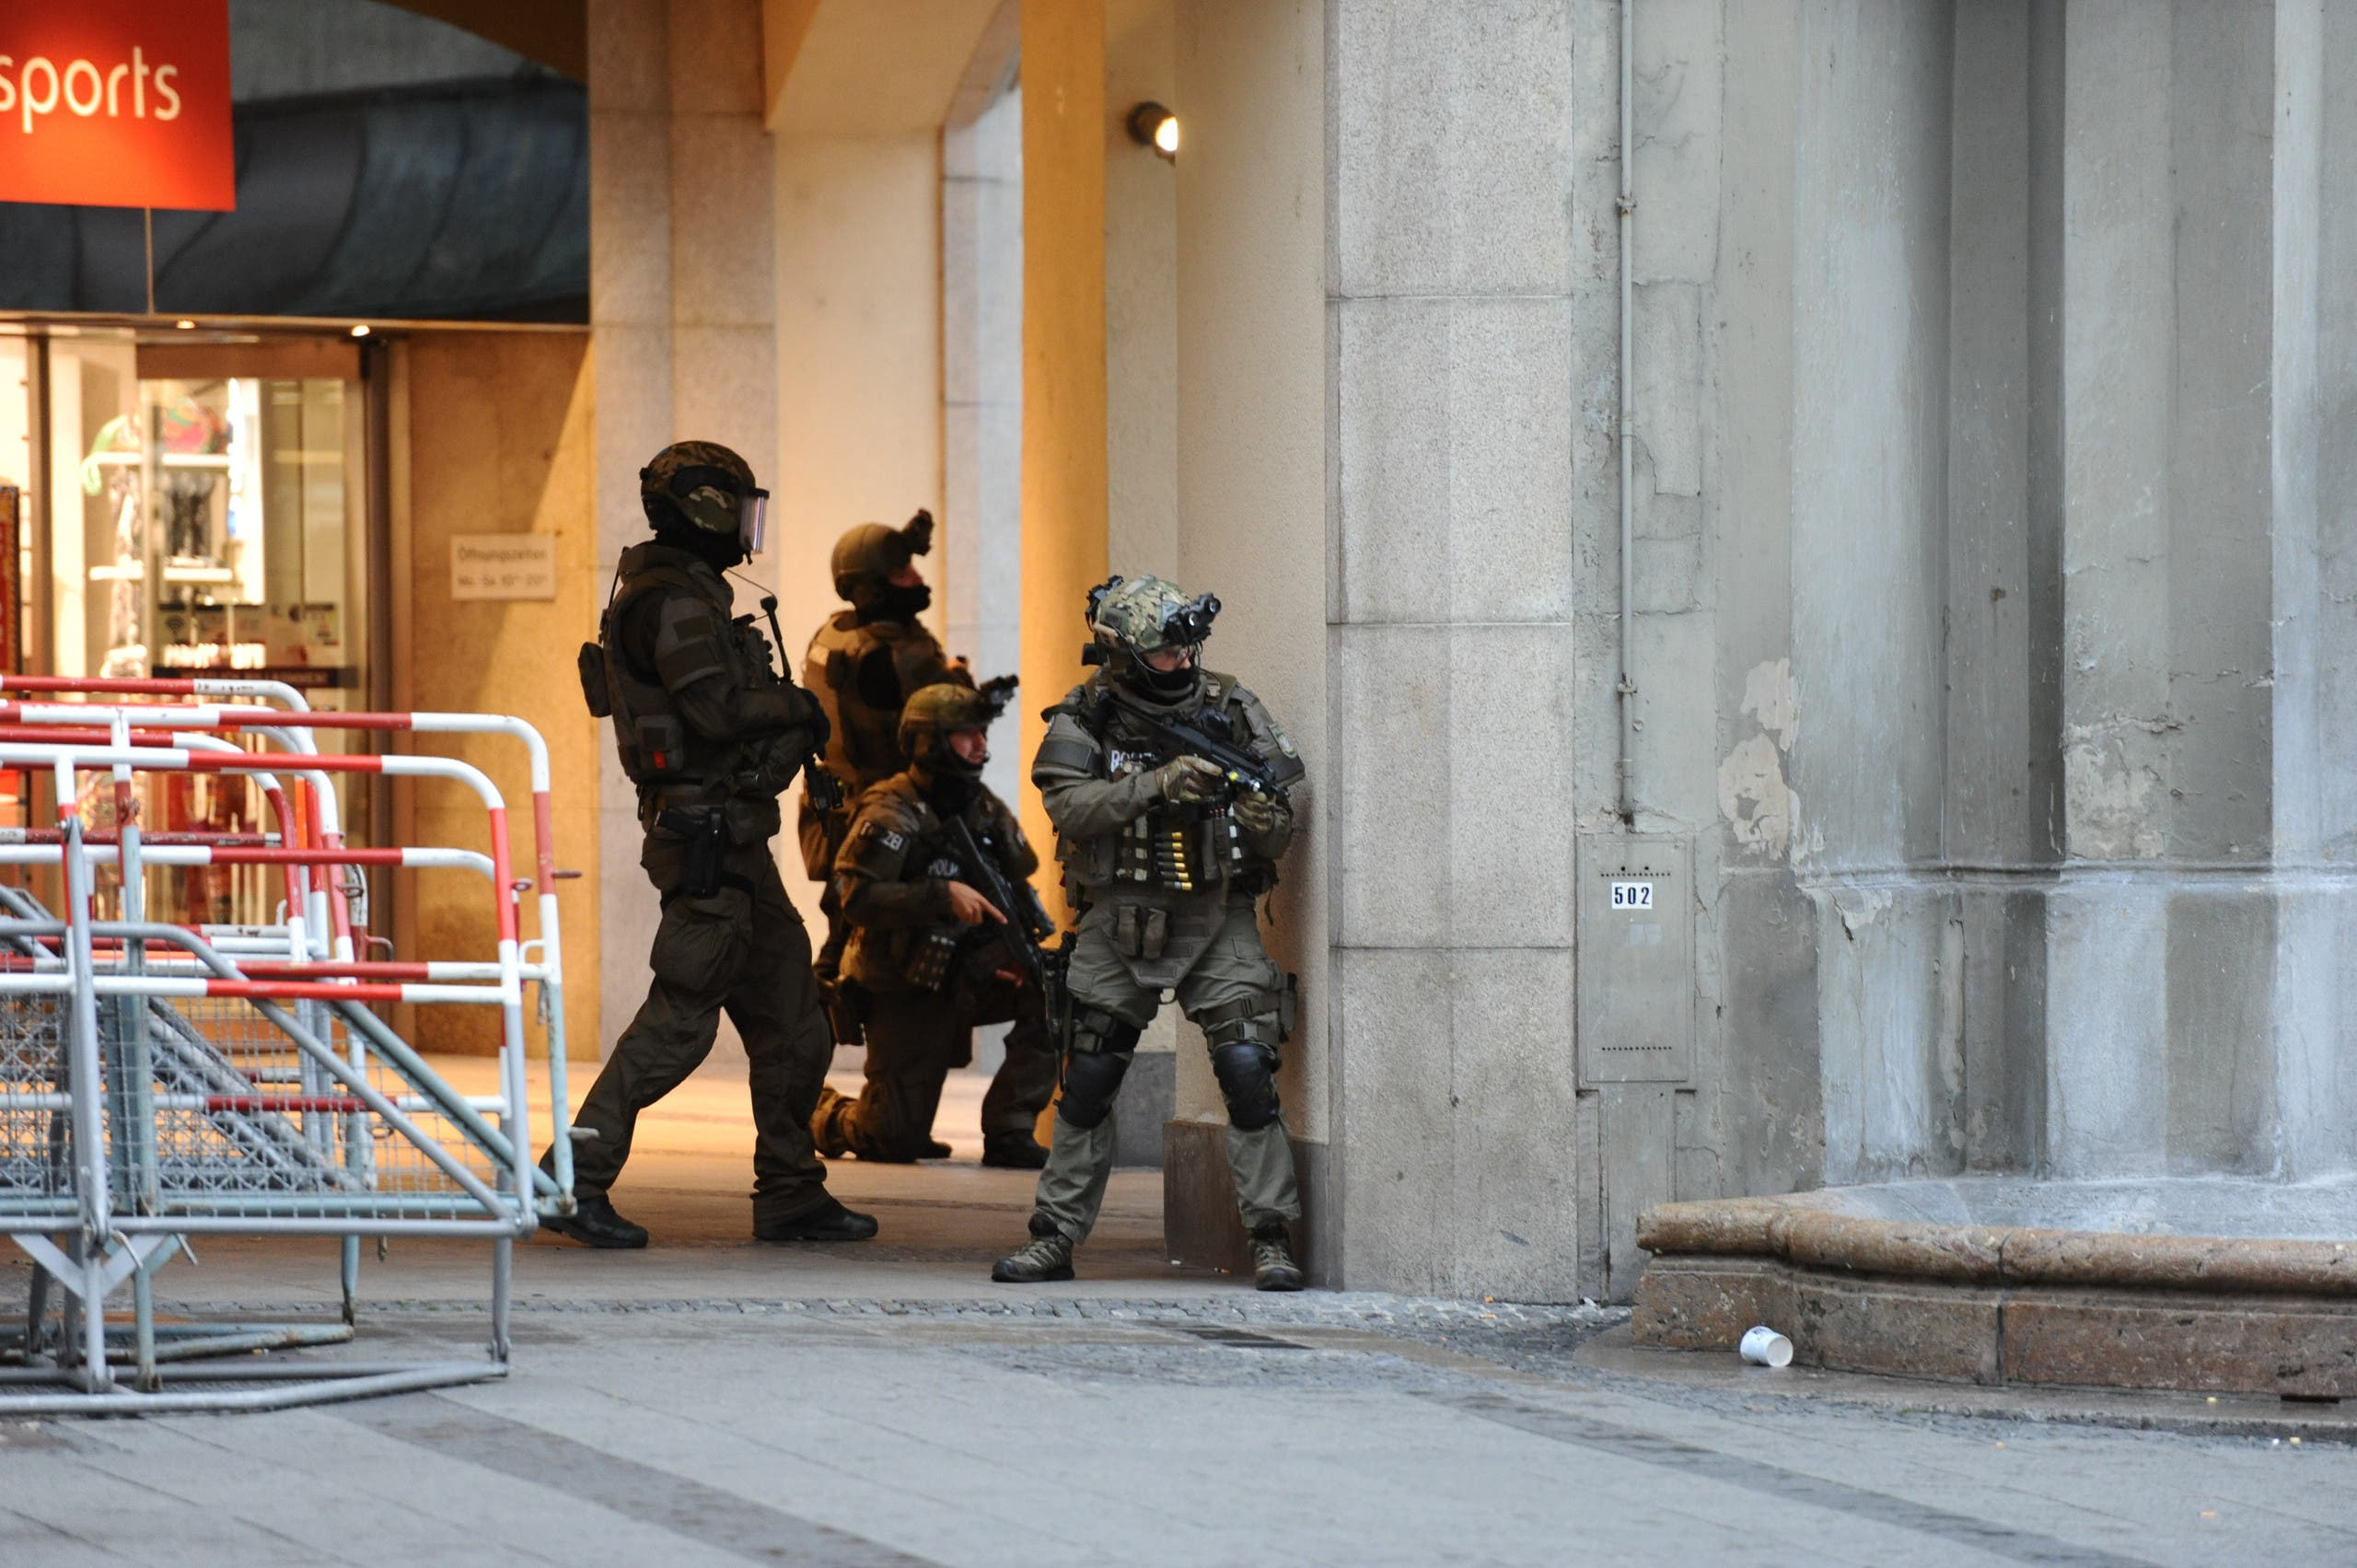 Police secures the area of a subway station Karlsplatz (Stachus) near a shopping mall following a shooting on July 22, 2016 in Munich. (AFP)